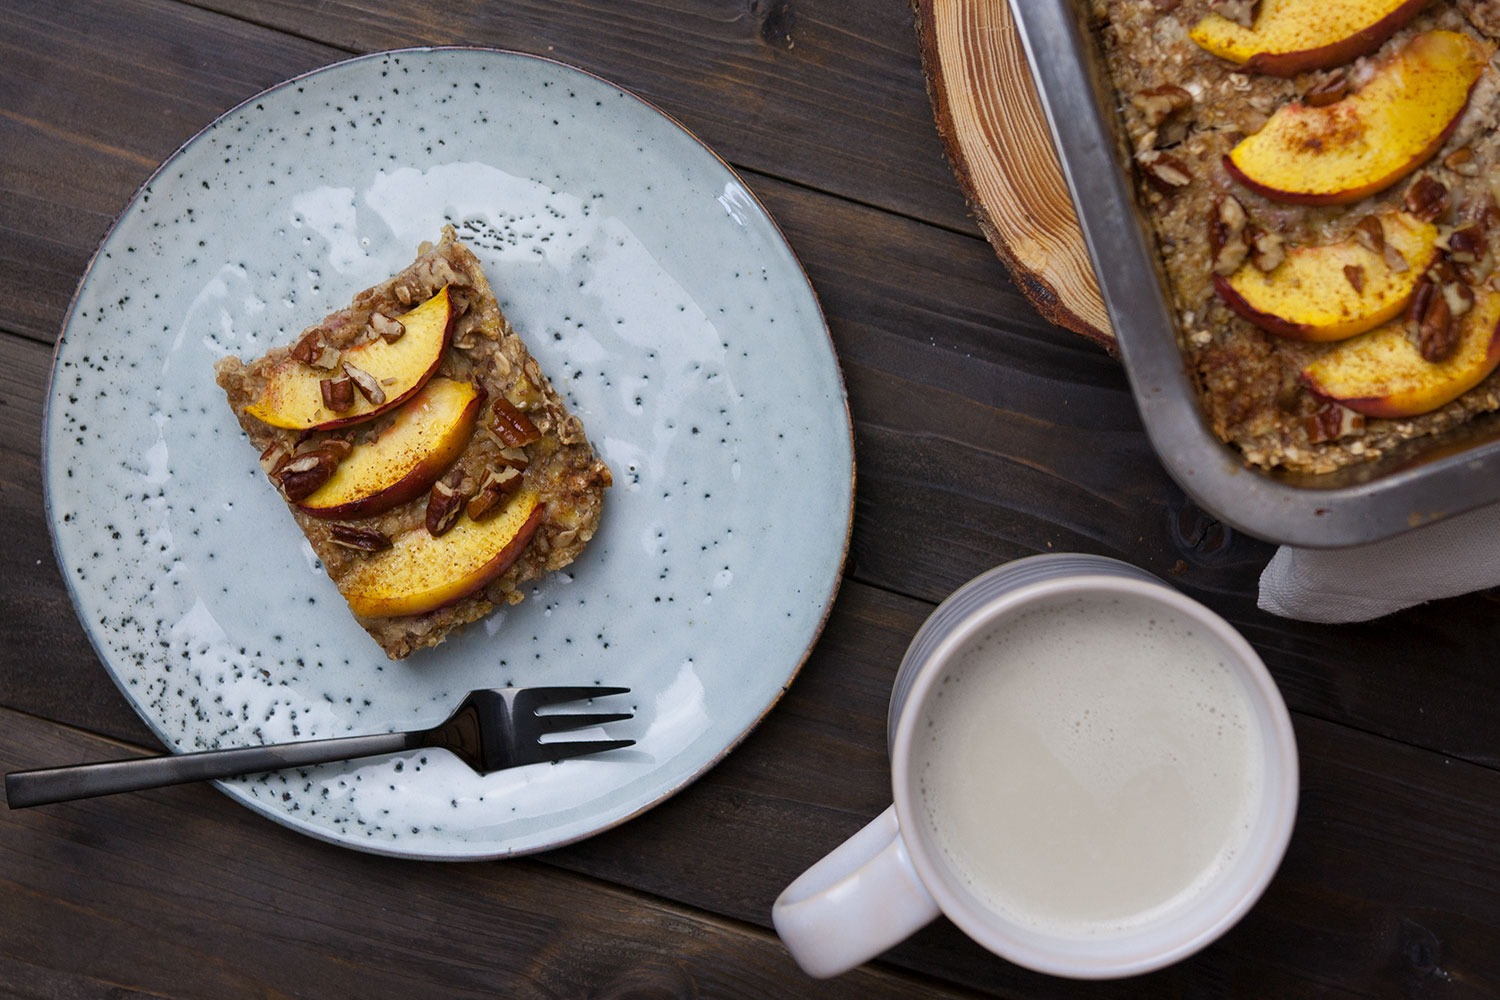 Bakes Oatmeal mit Pfirsich